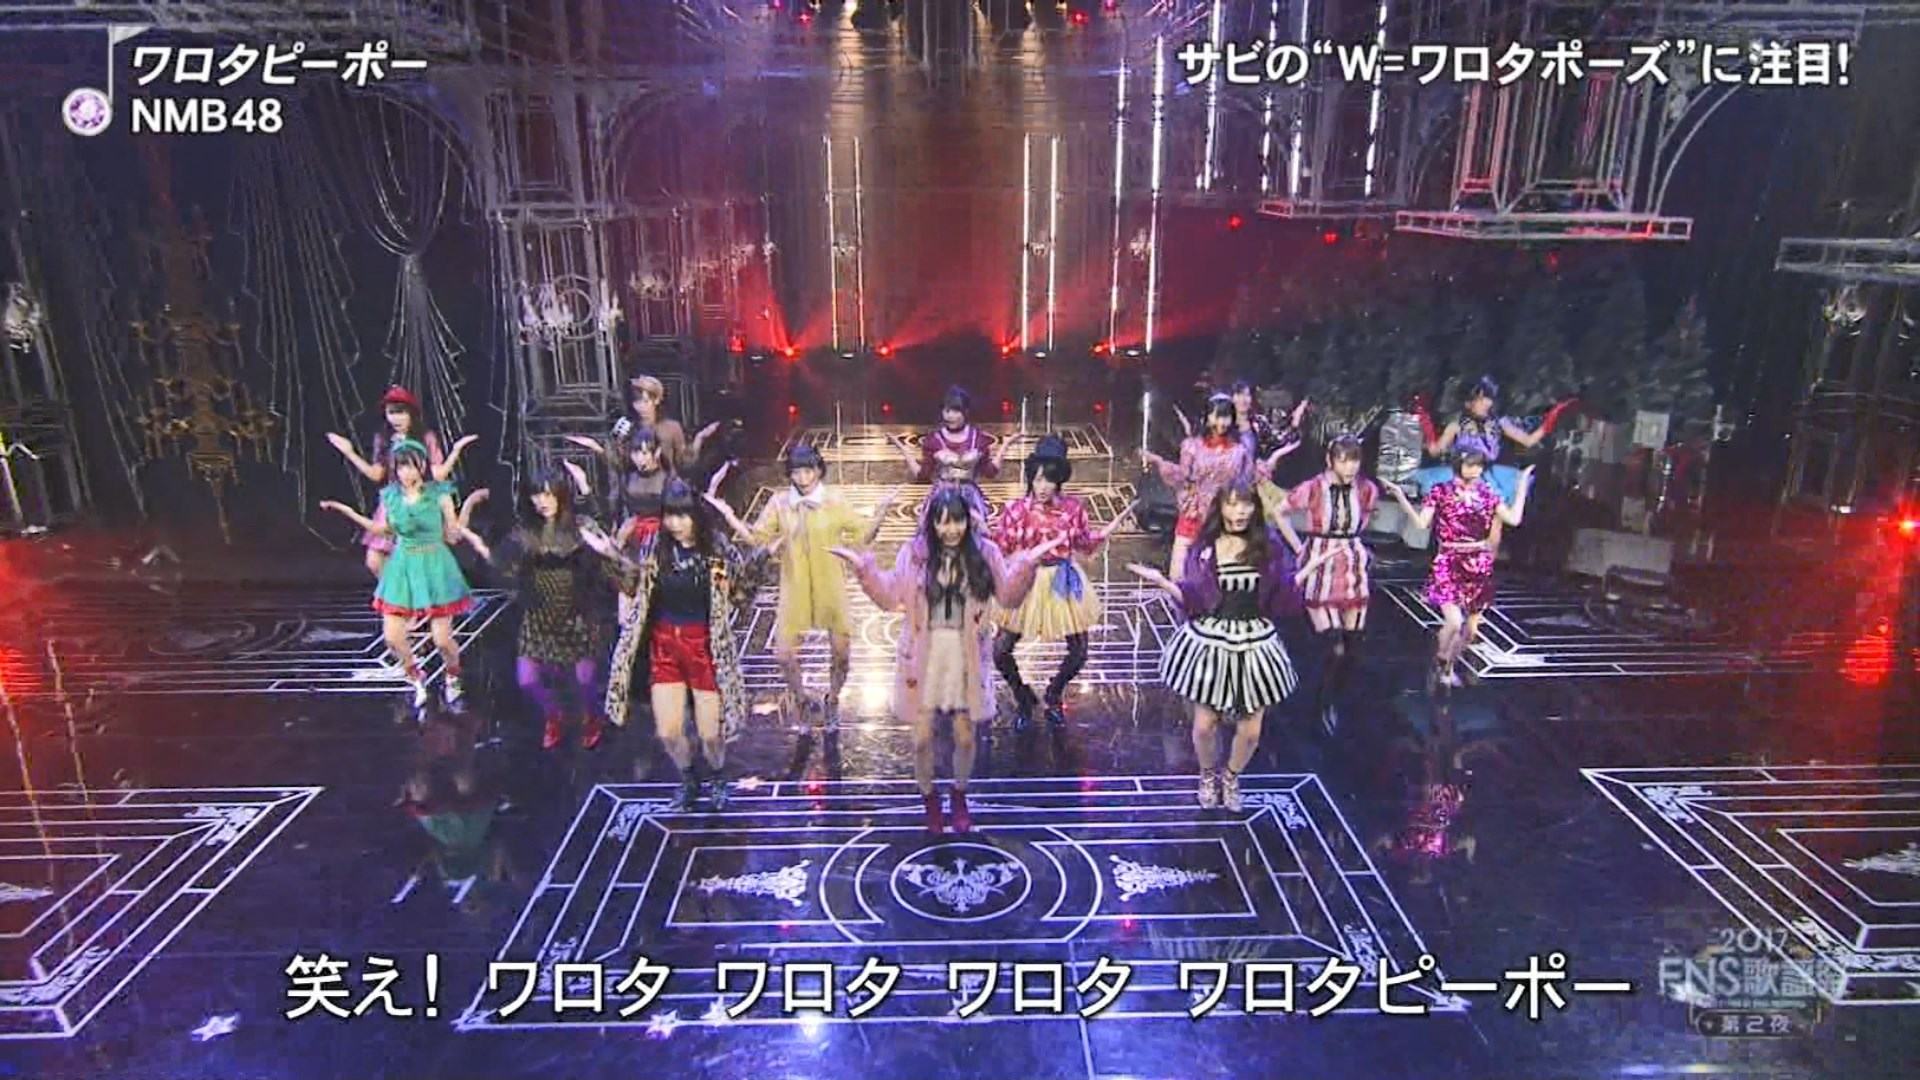 2017FNS歌謡祭第2夜・NMB48ワロタピーポーキャプ-054